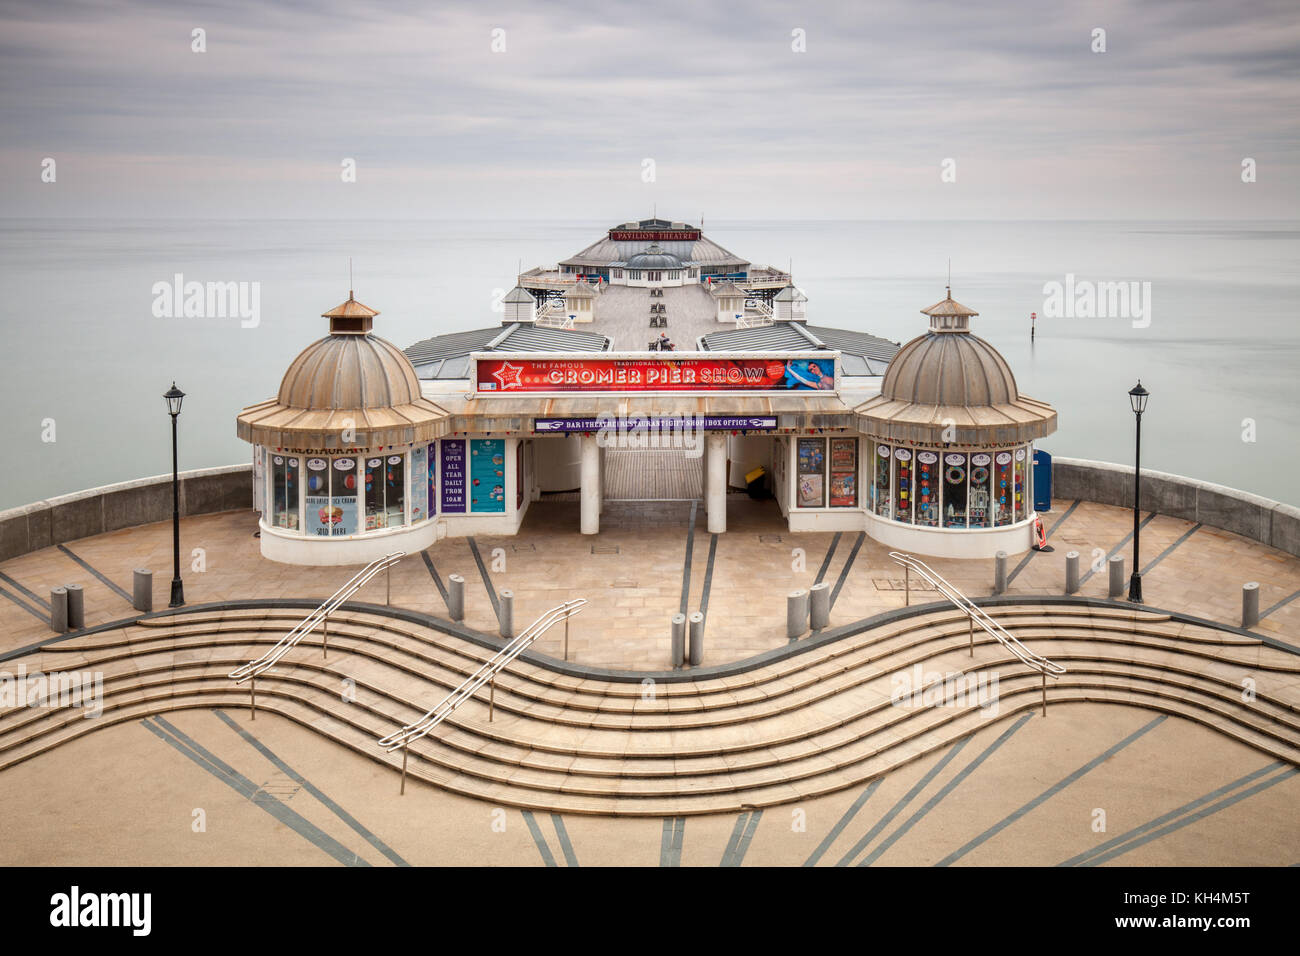 Cromer Pier, Norfolk, UK - Stock Image